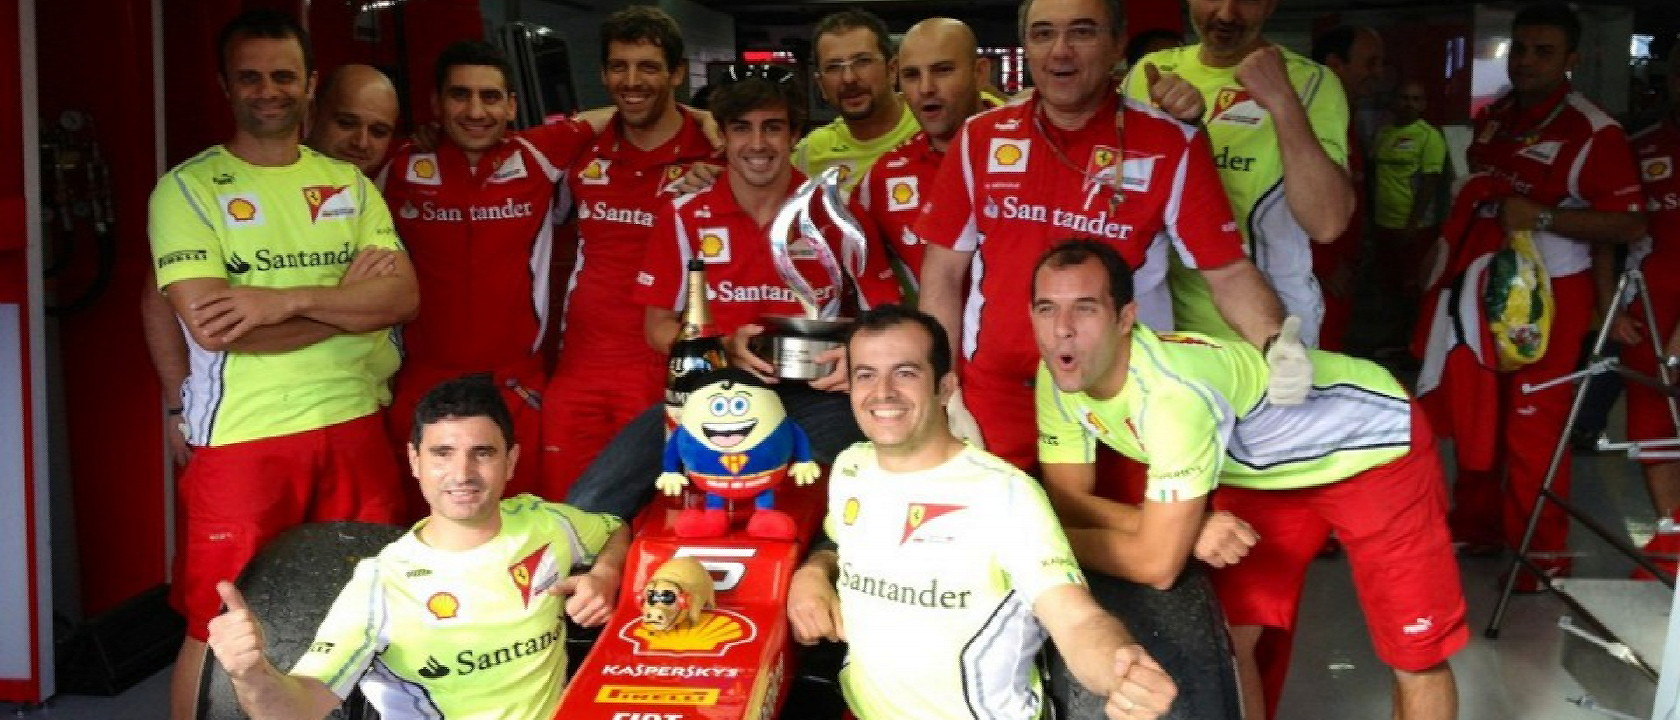 alonso_germany2012_celebration-1680x720